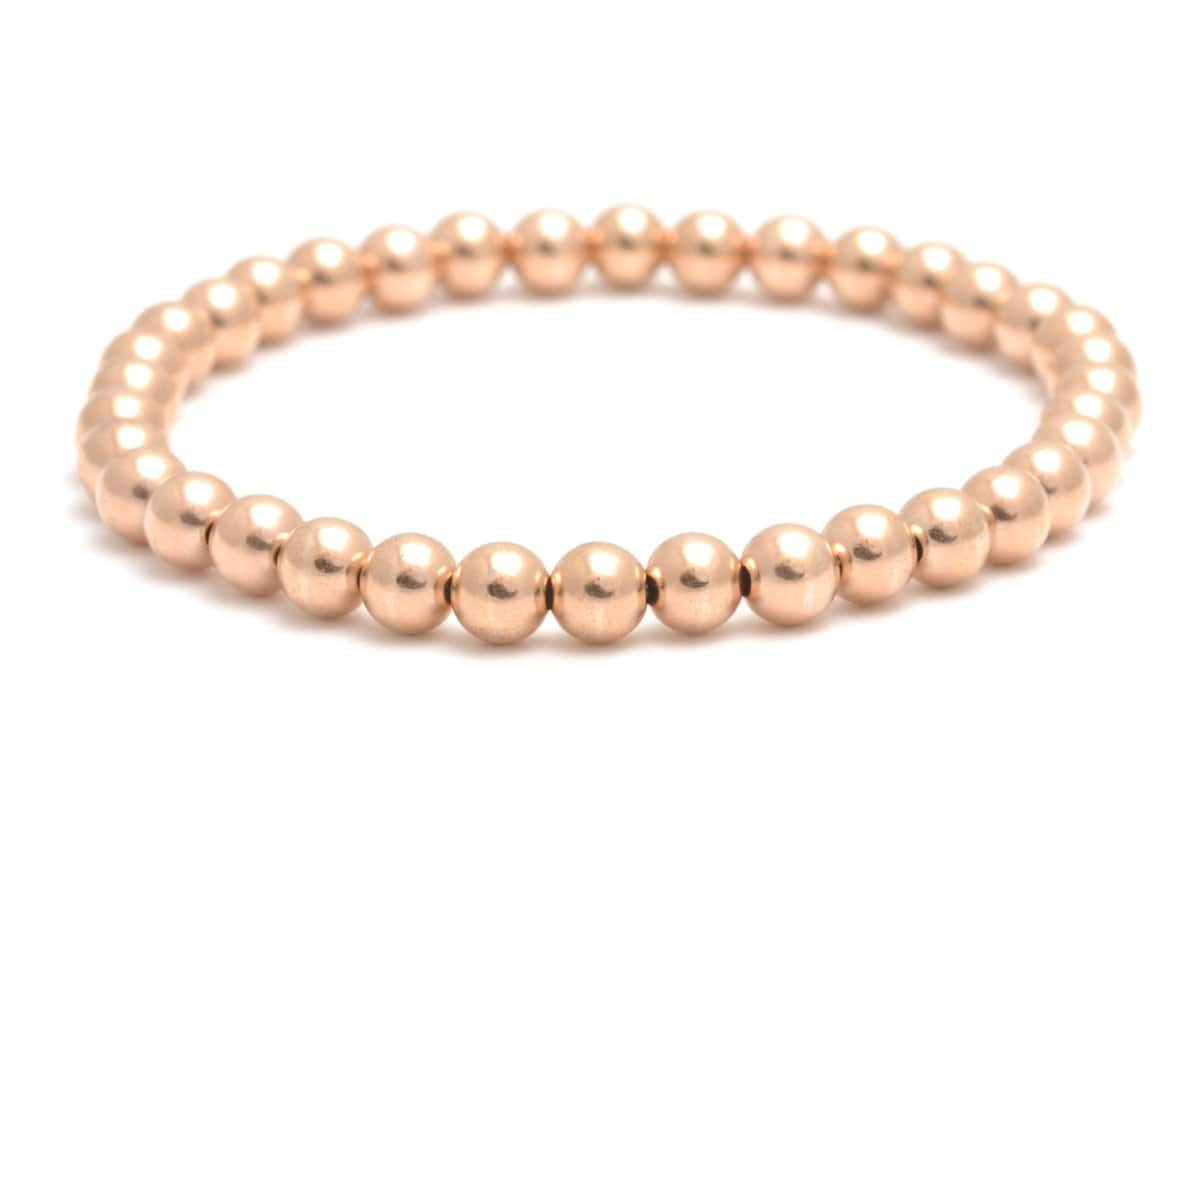 5mm rose gold round bead bracelet